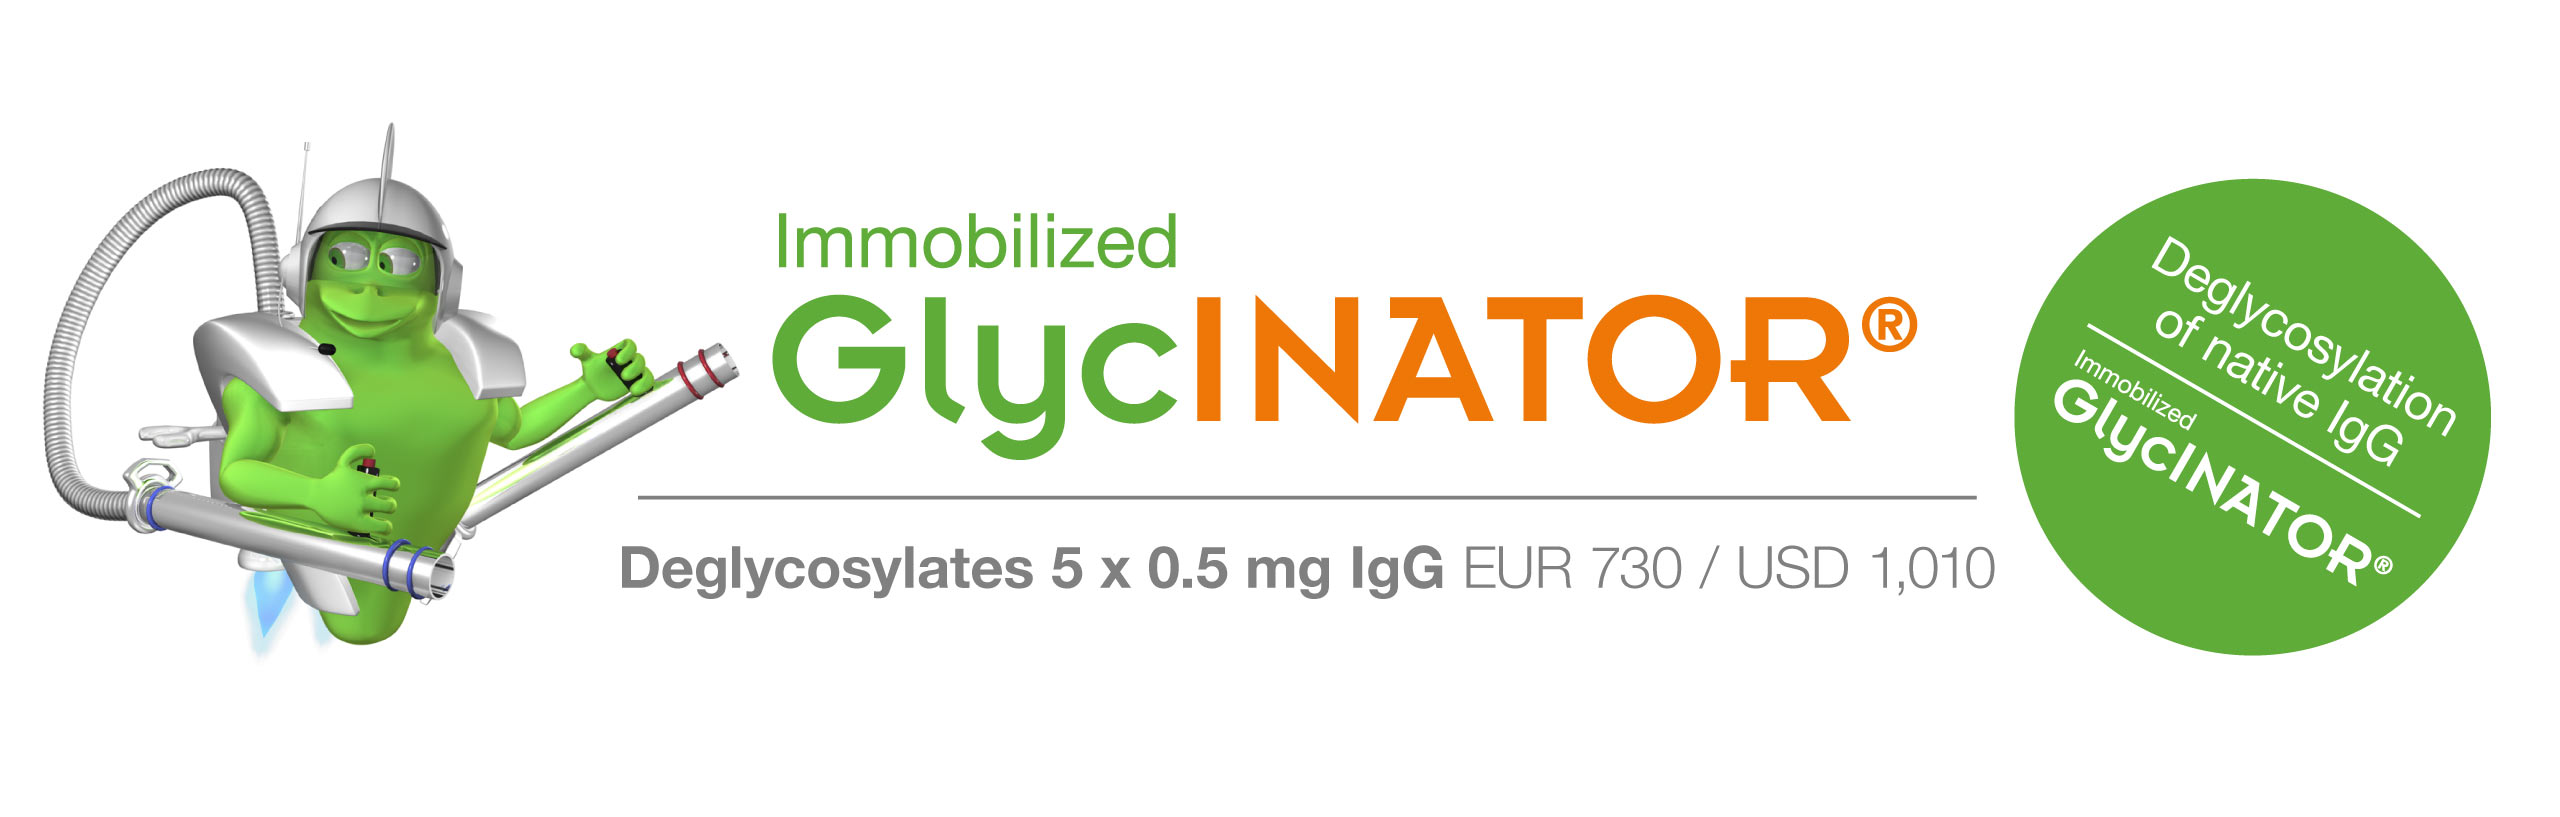 2018-Immobilized_GlycINATOR_Banner_2560x817px